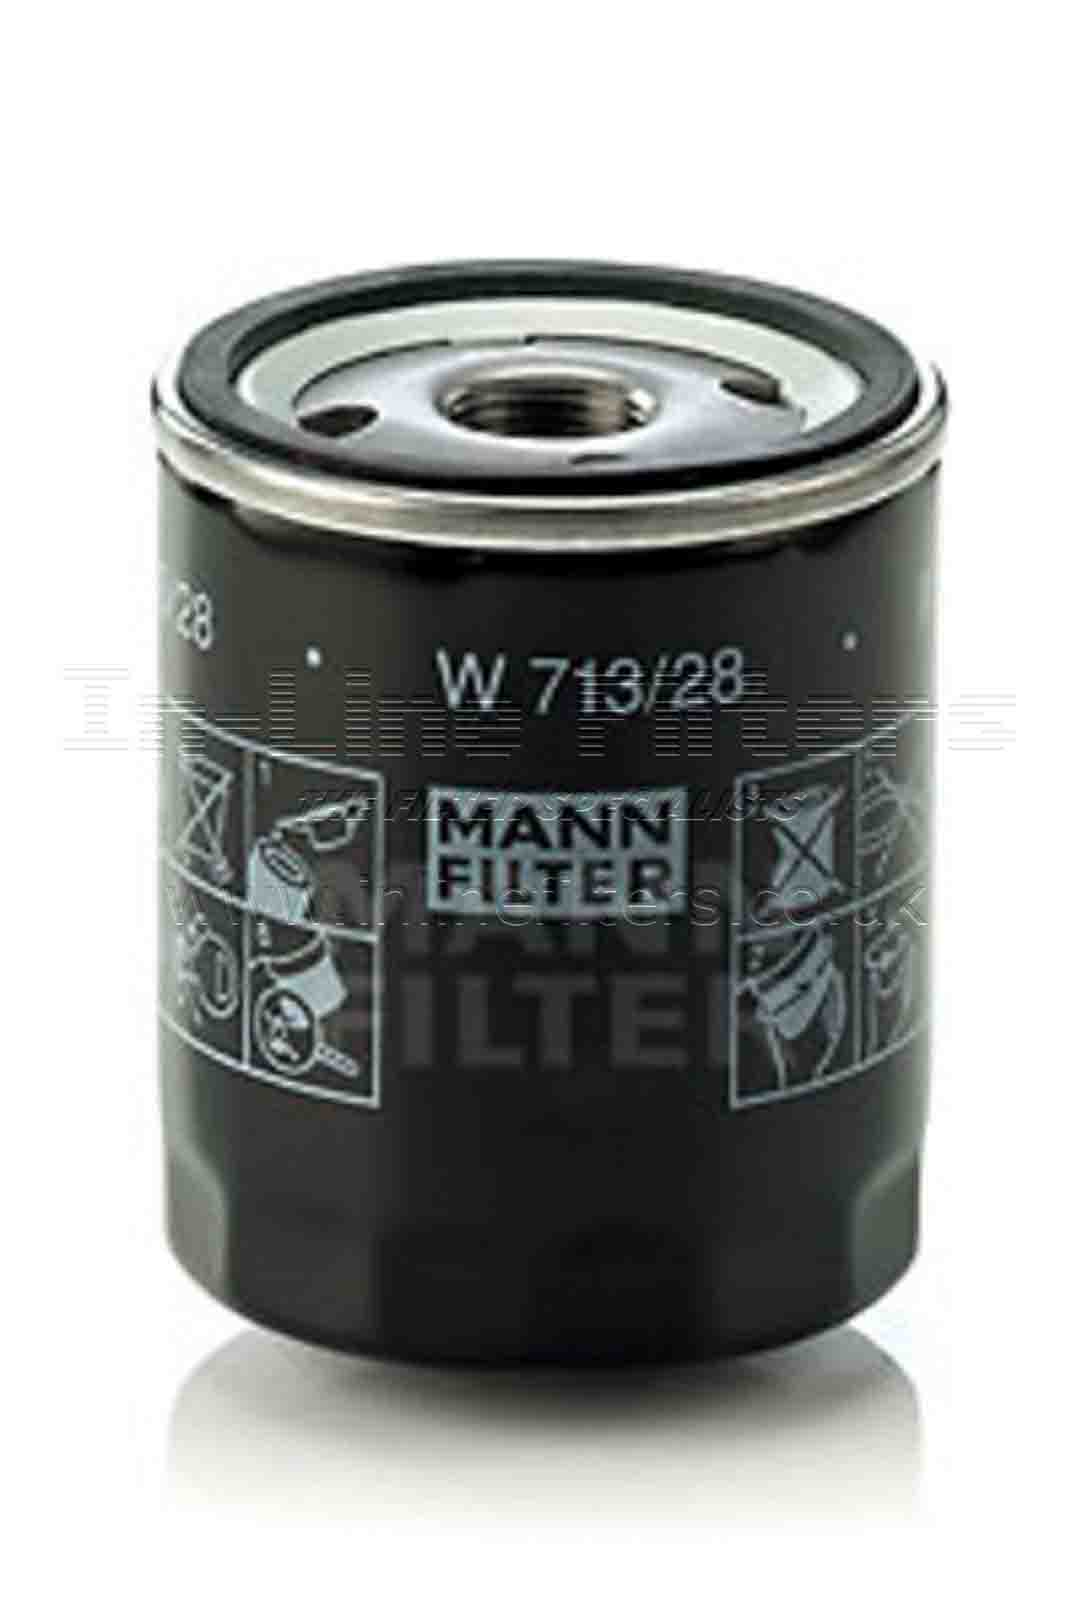 FMH-W713-28 FILTER-Lube(Mann W713/28) - Click Image to Close